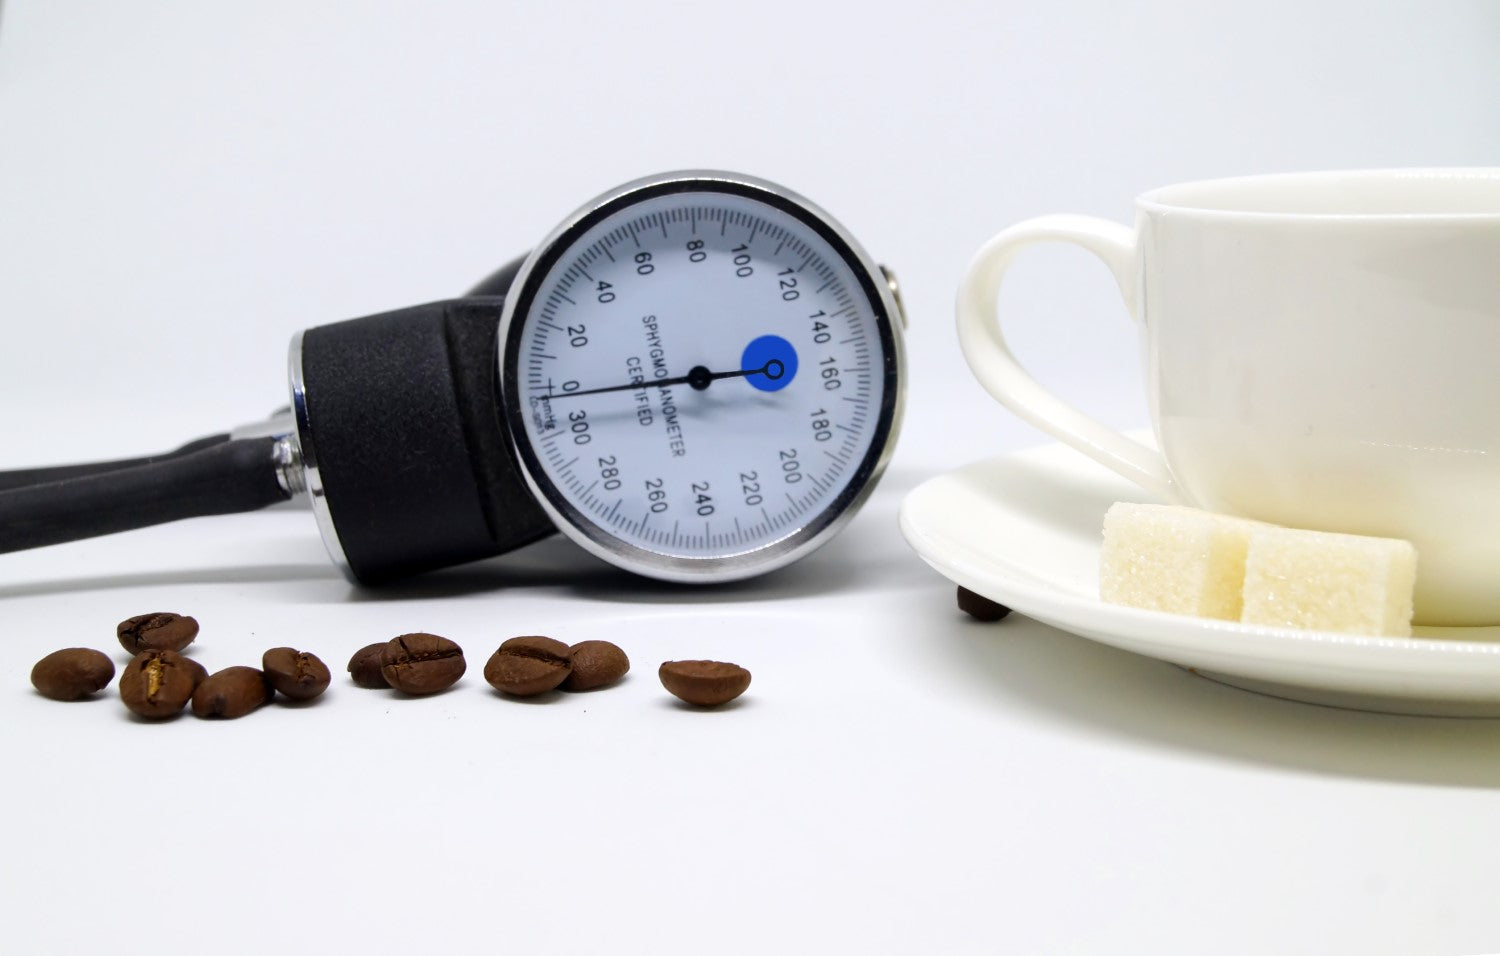 beans, cup and stethoscope